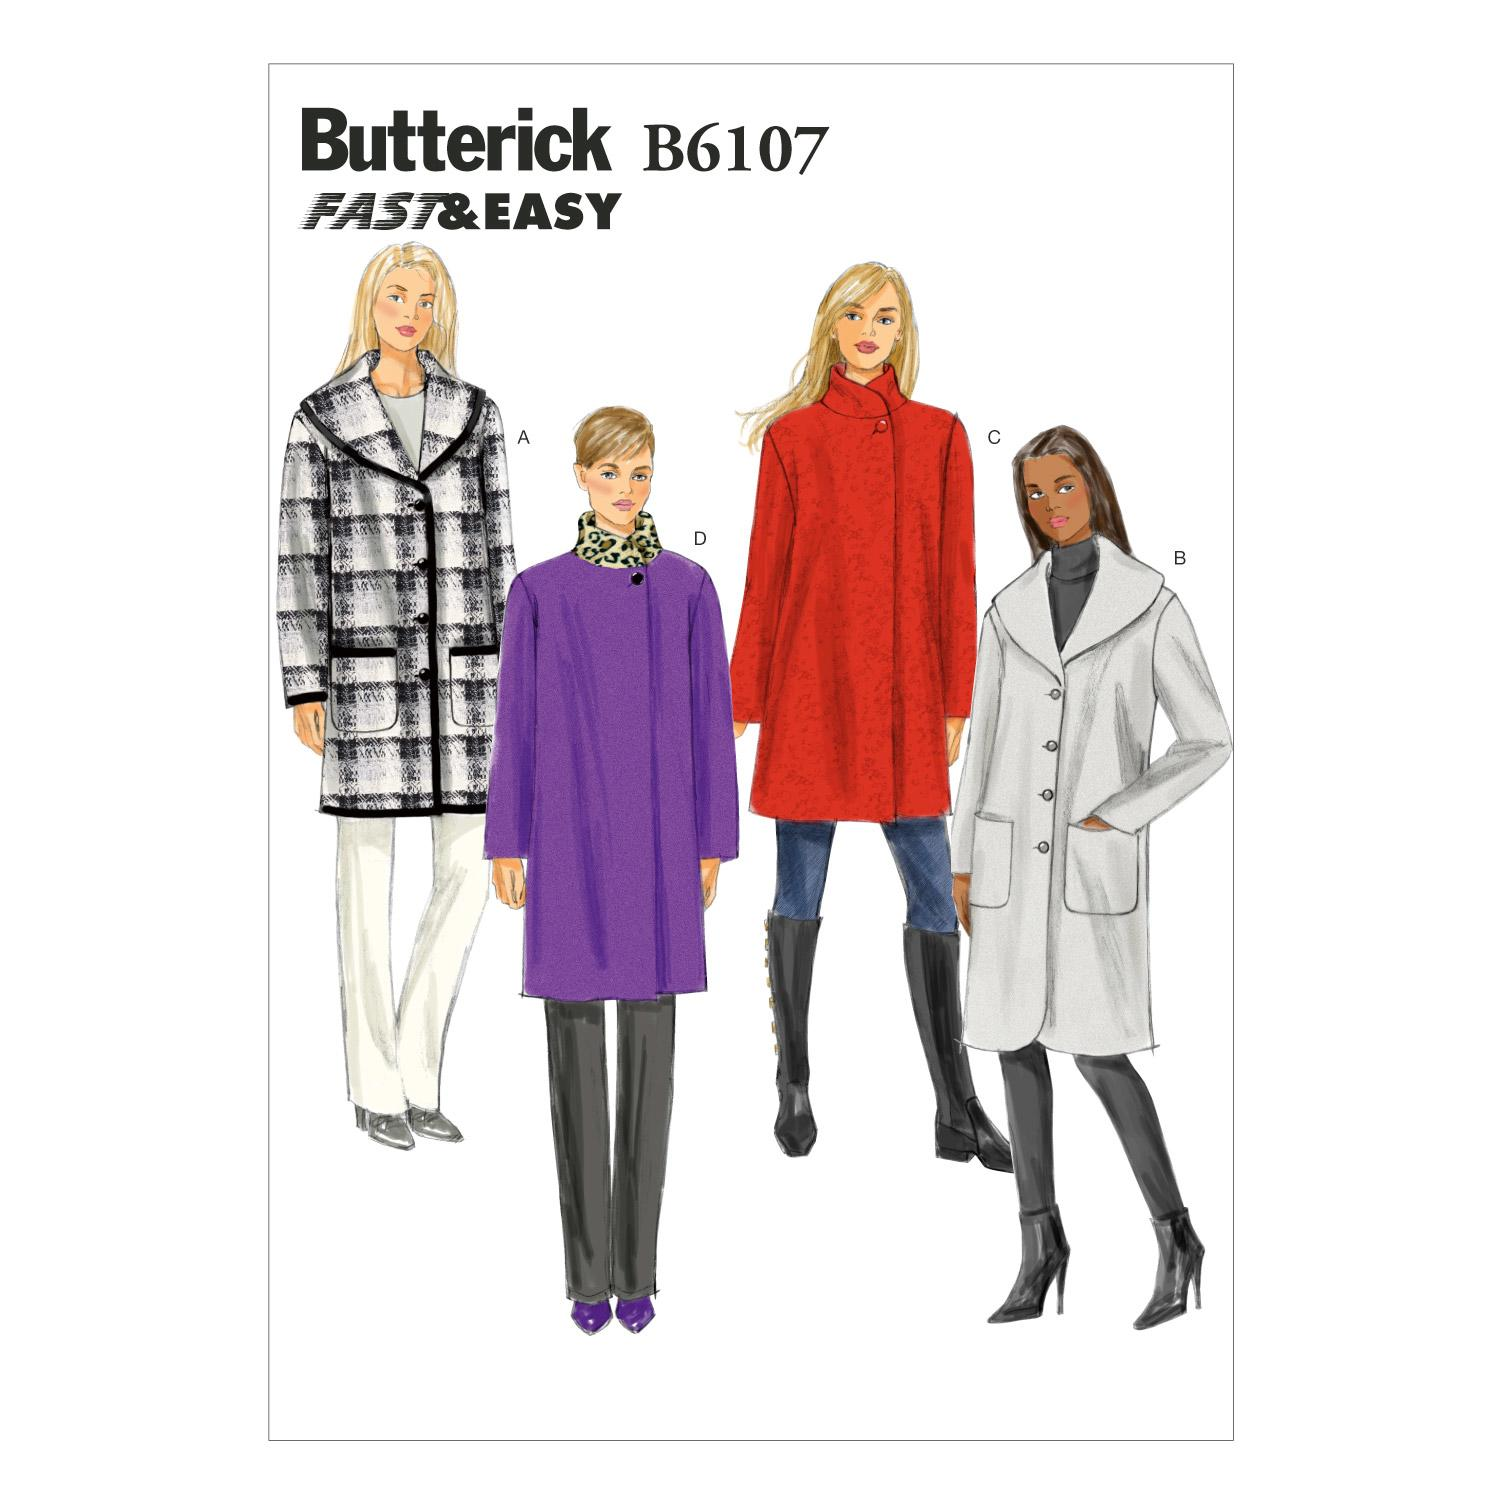 Butterick B6107 Misses' Coat